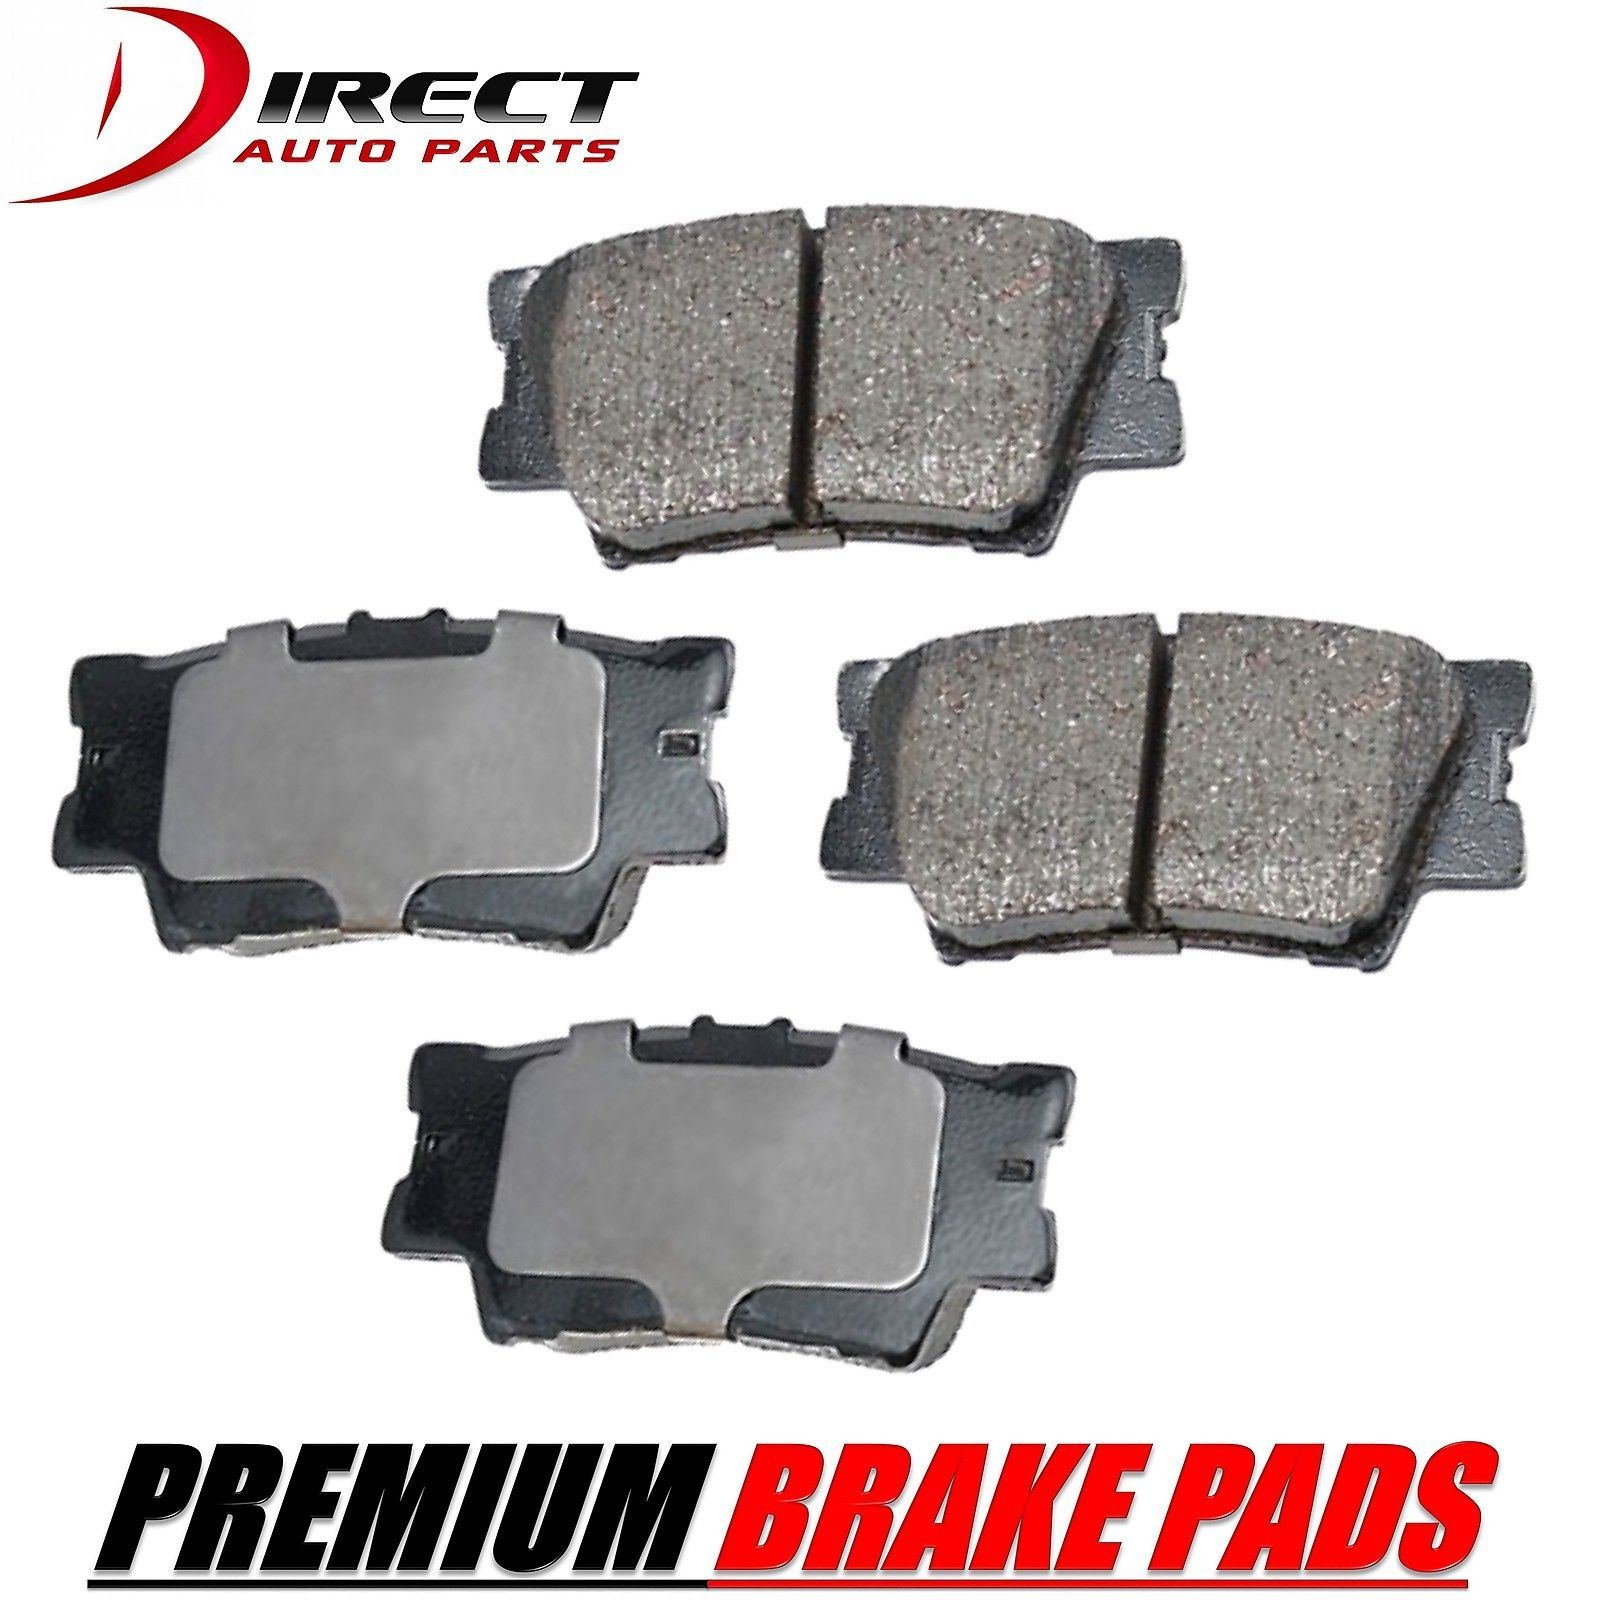 Cool great toyota premium rear brake pads for toyota rav4 2006 cool great toyota premium rear brake pads for toyota rav4 2006 2016 2017 2018 fandeluxe Choice Image